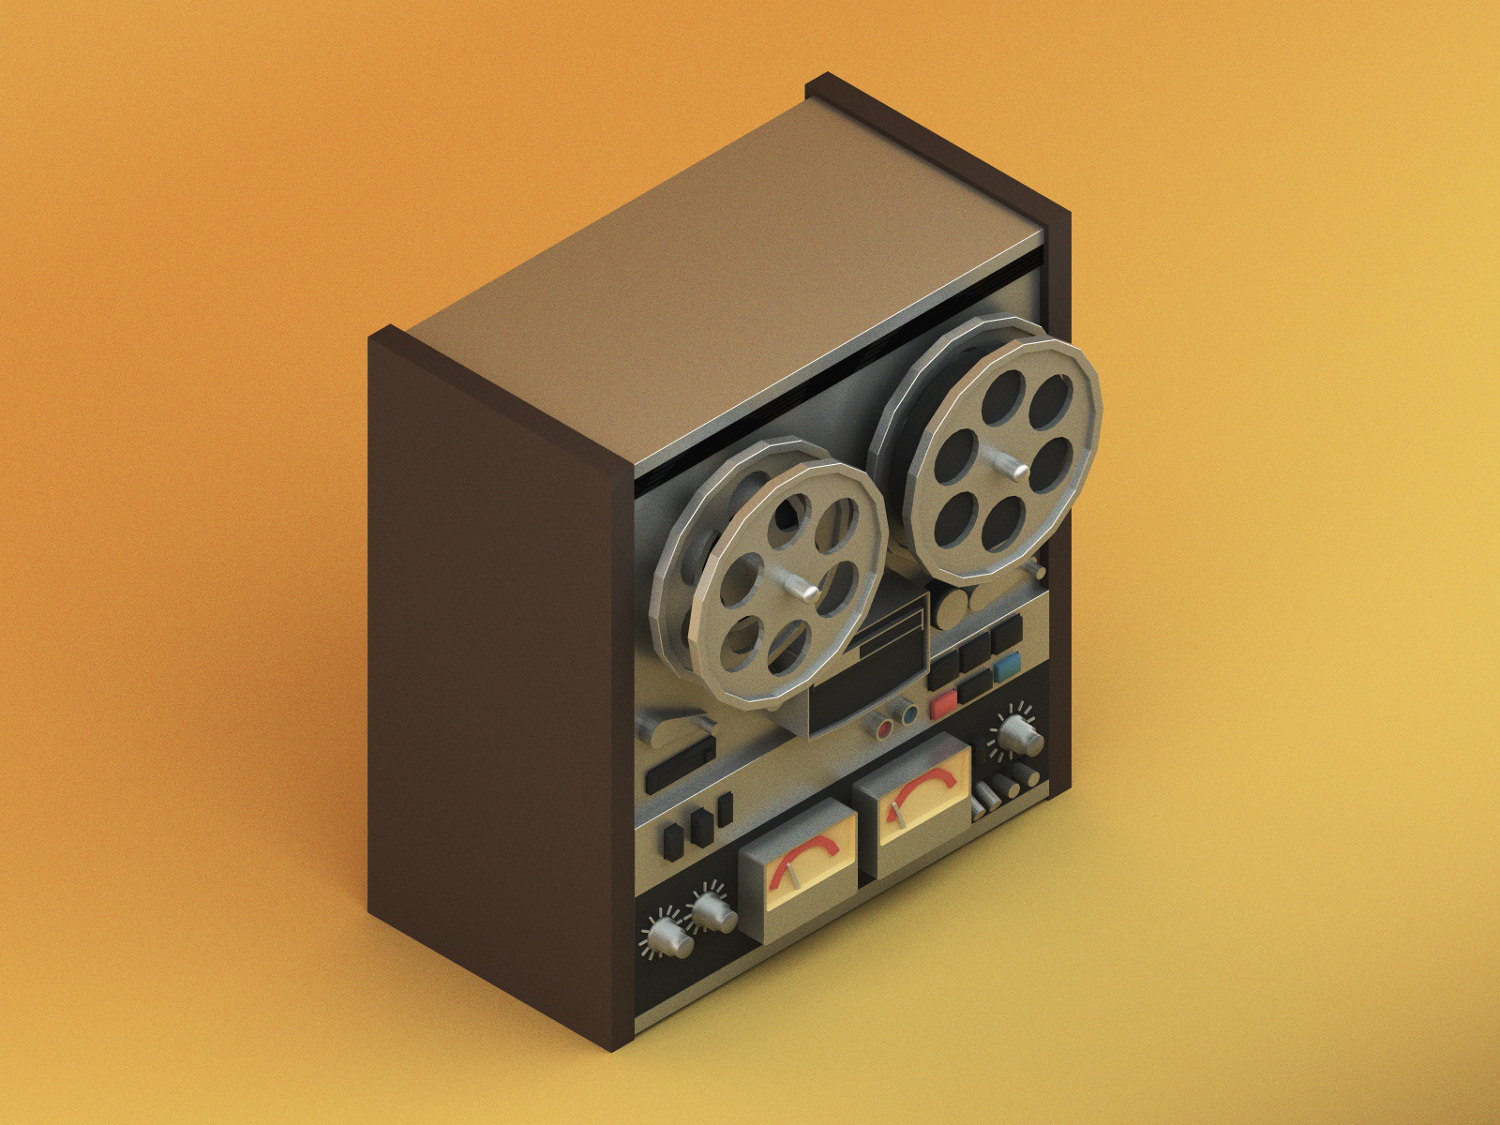 TEAC-Reel-to-Reel_o_1500